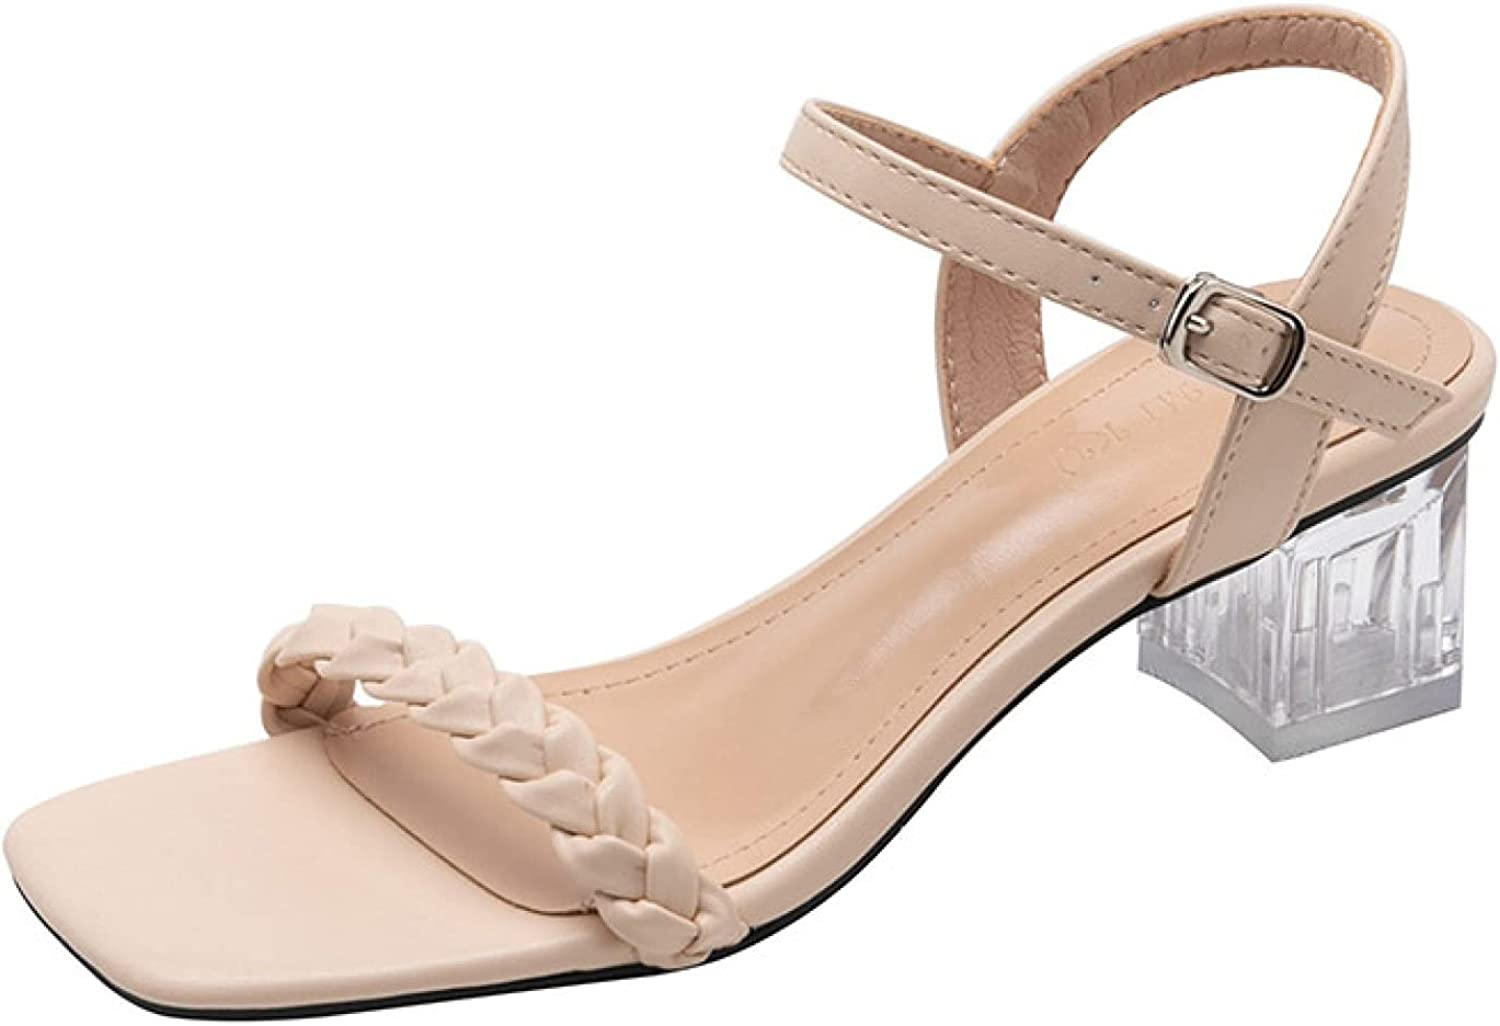 Crystal Super Special Oakland Mall SALE held Heels Sandals for Women Weaves Band Business Fashion Pee